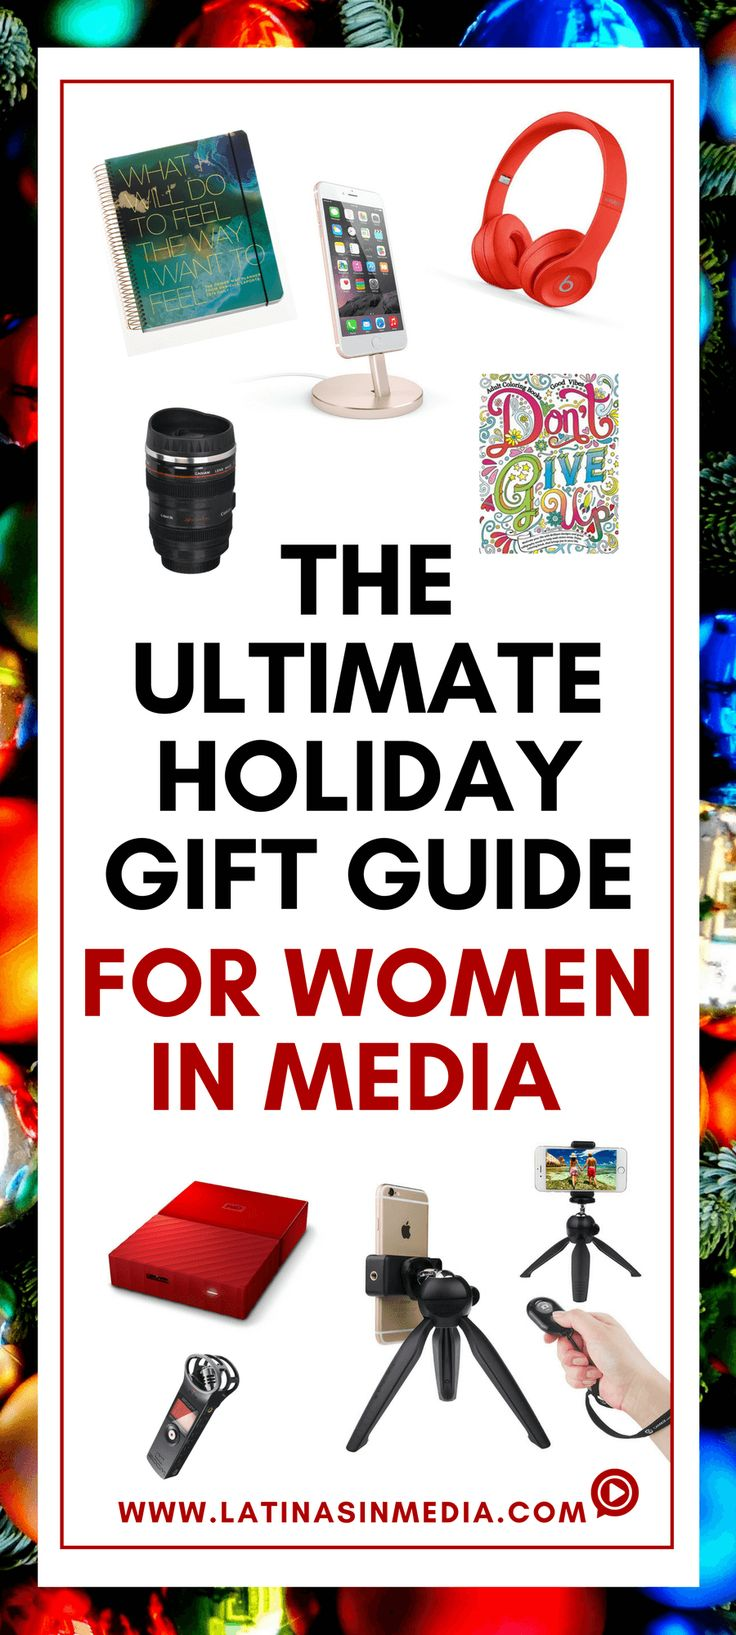 The Ultimate Holiday Gift Guide for Women in Media - Latinas in Media